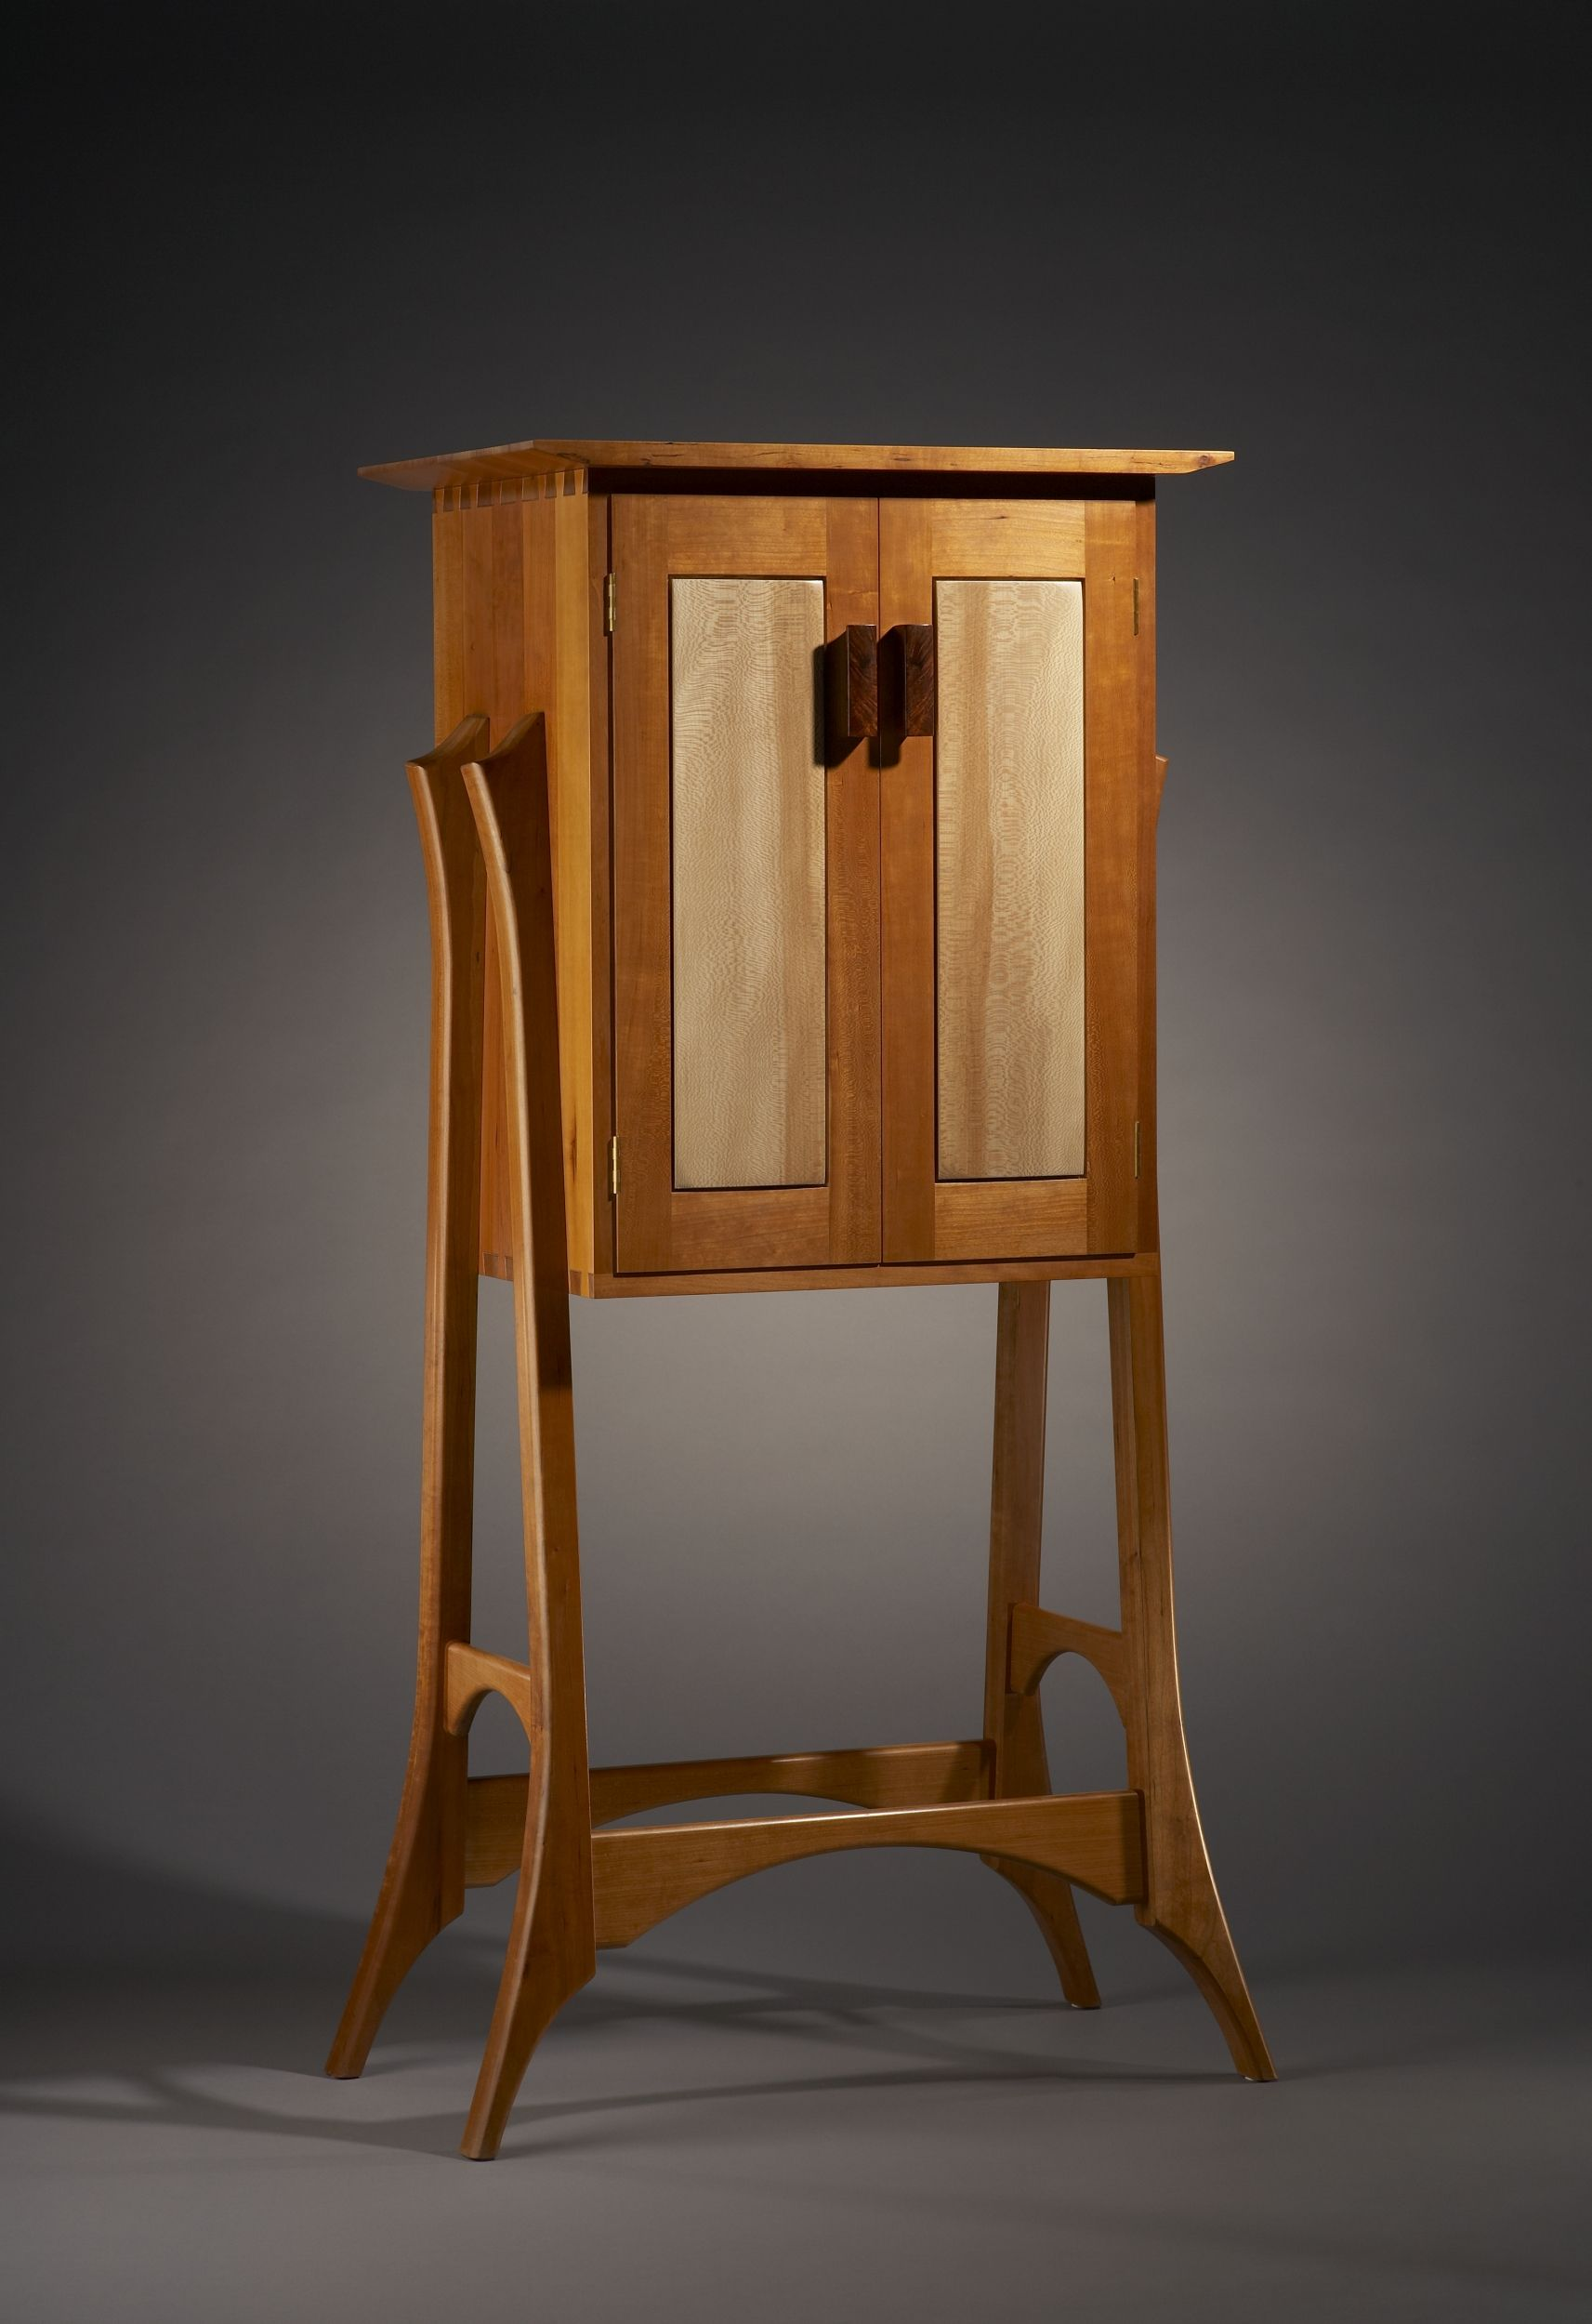 Cherry And Sycamore Woodworking Pinterest Furniture Ideas